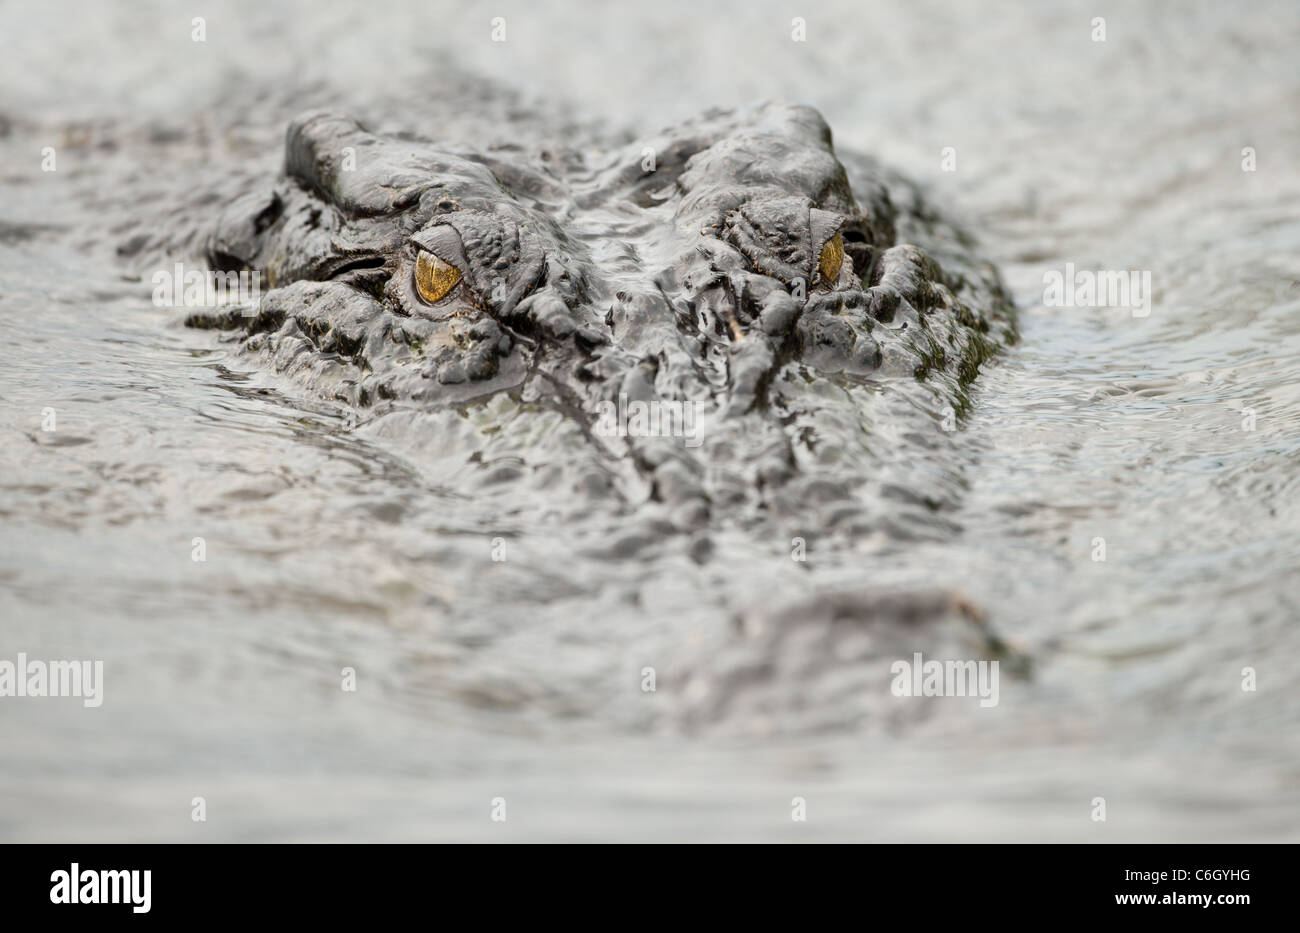 Partially submerged head of saltwater crocodile with prominent eyes in Kakadu National Park, Northern Territory, - Stock Image